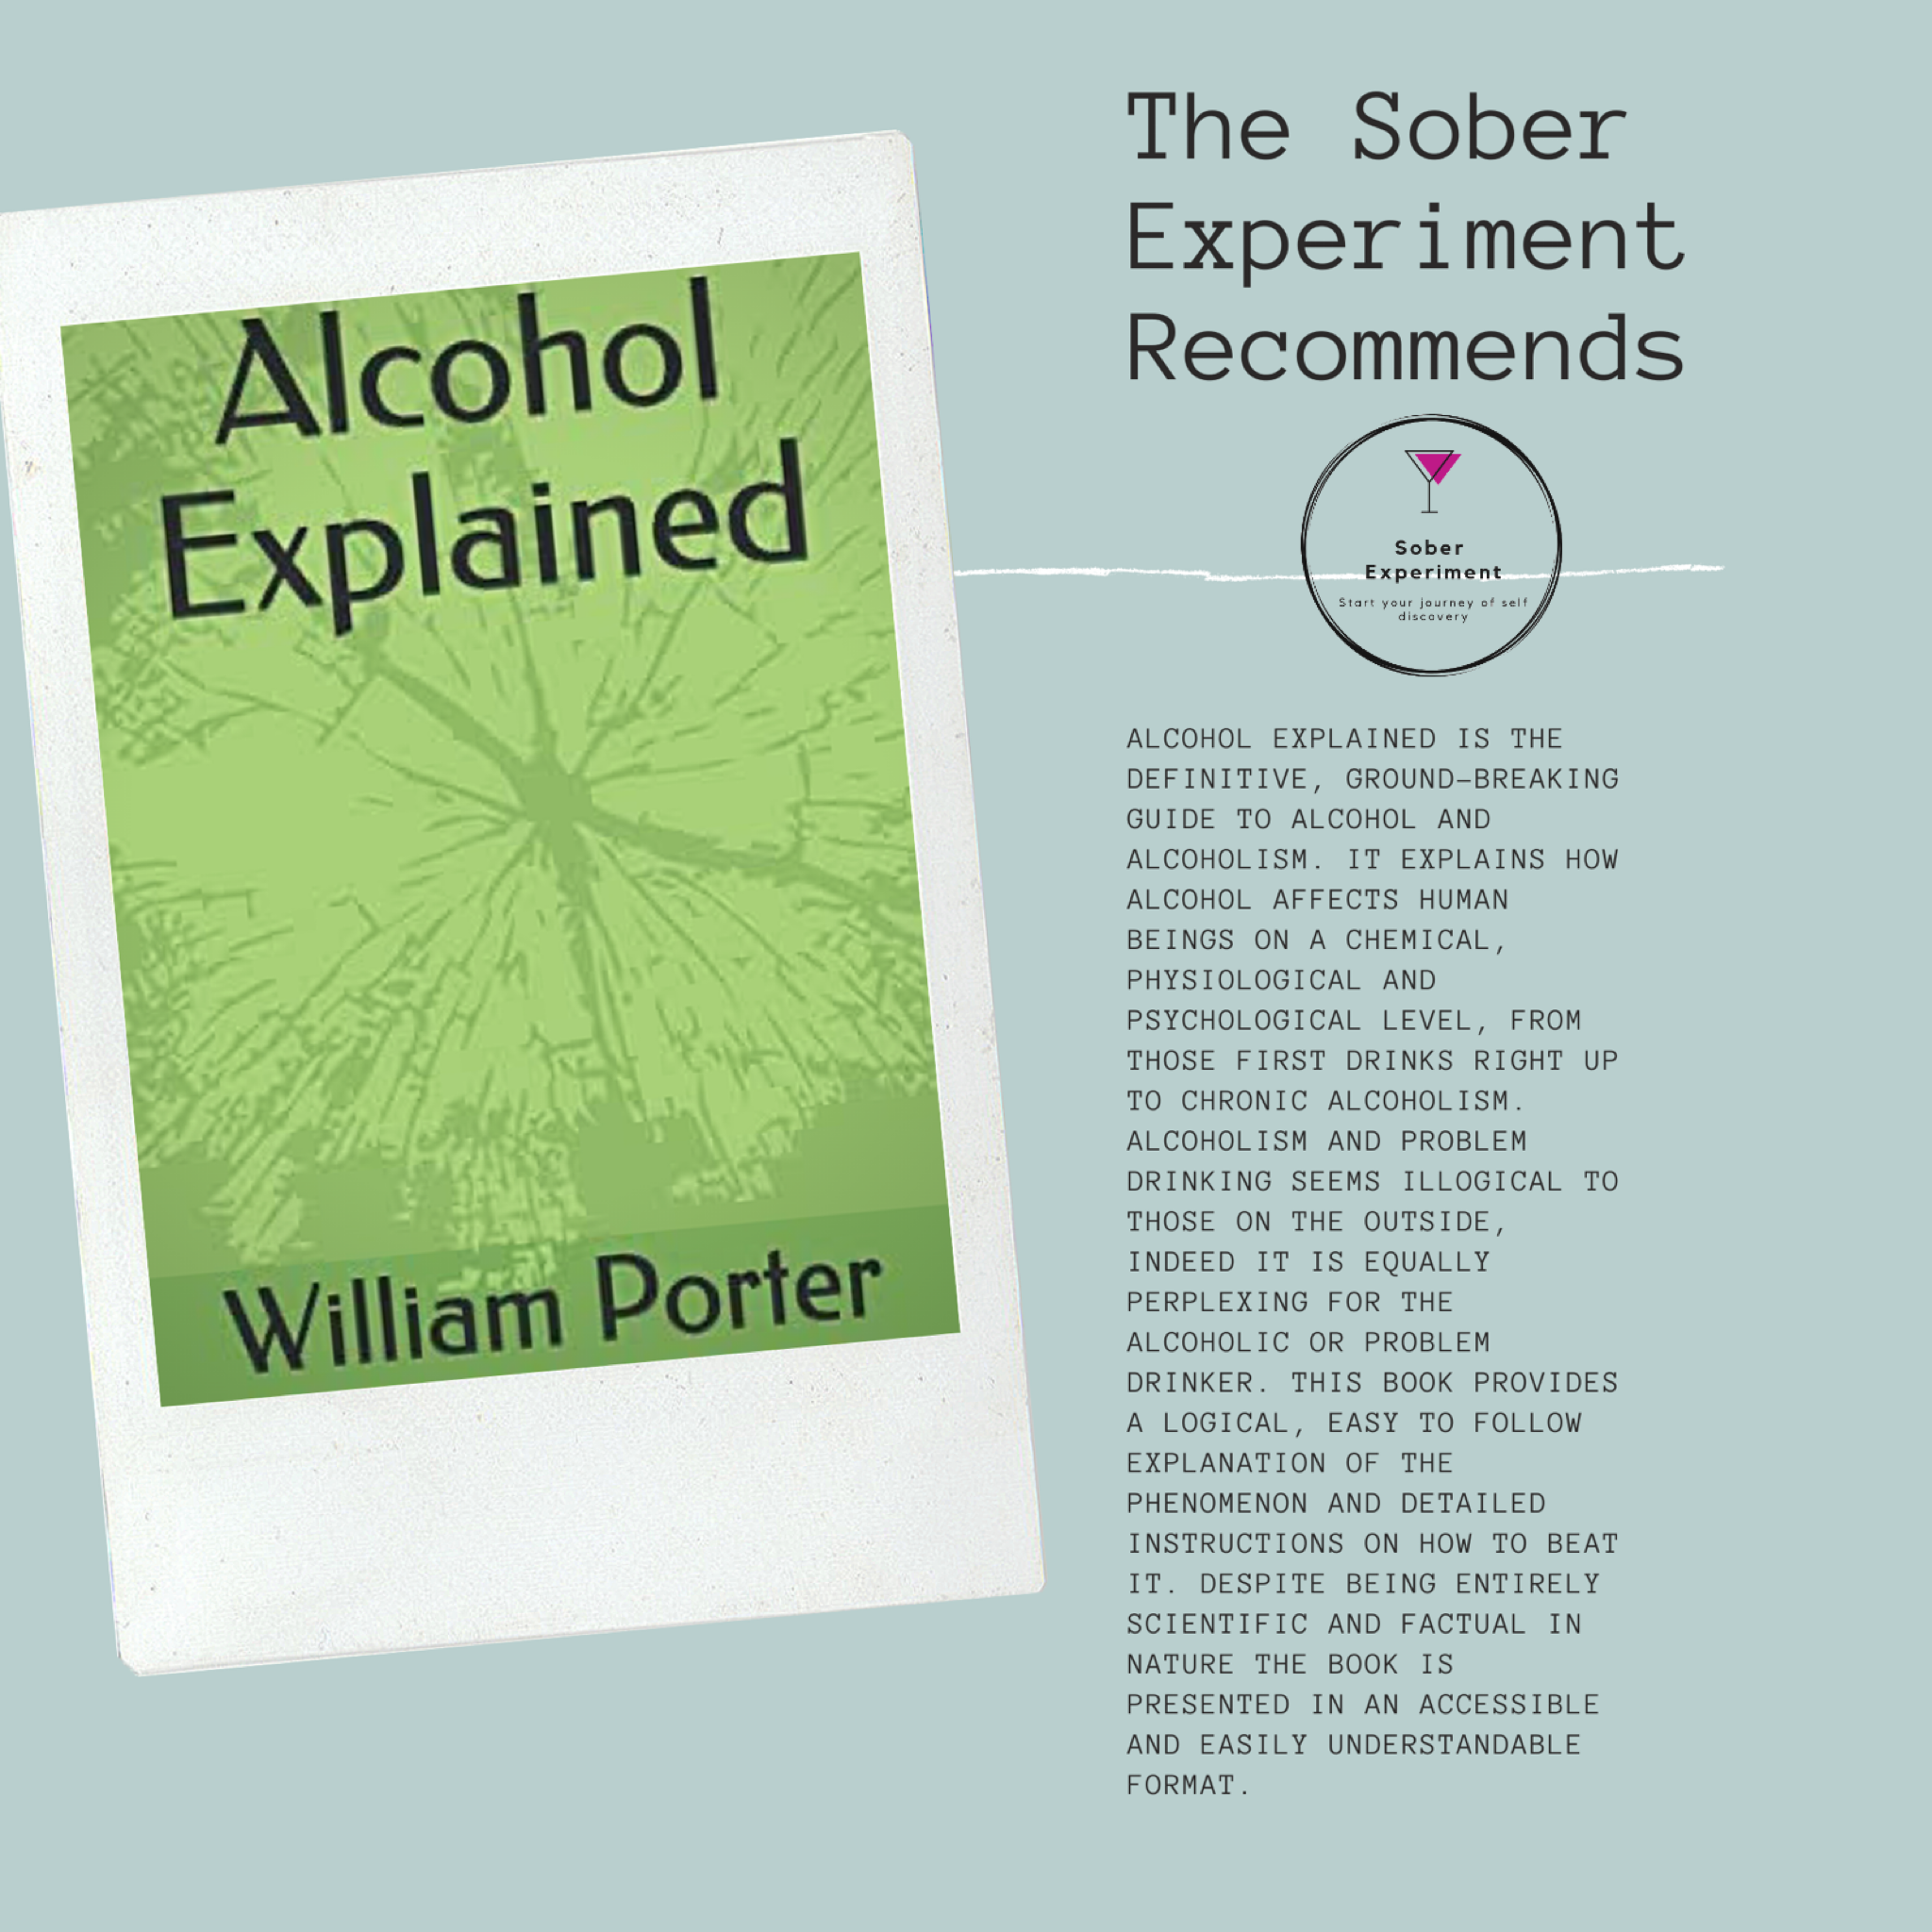 The Sober Experiment Recommends Alcohol Explained by William Porter